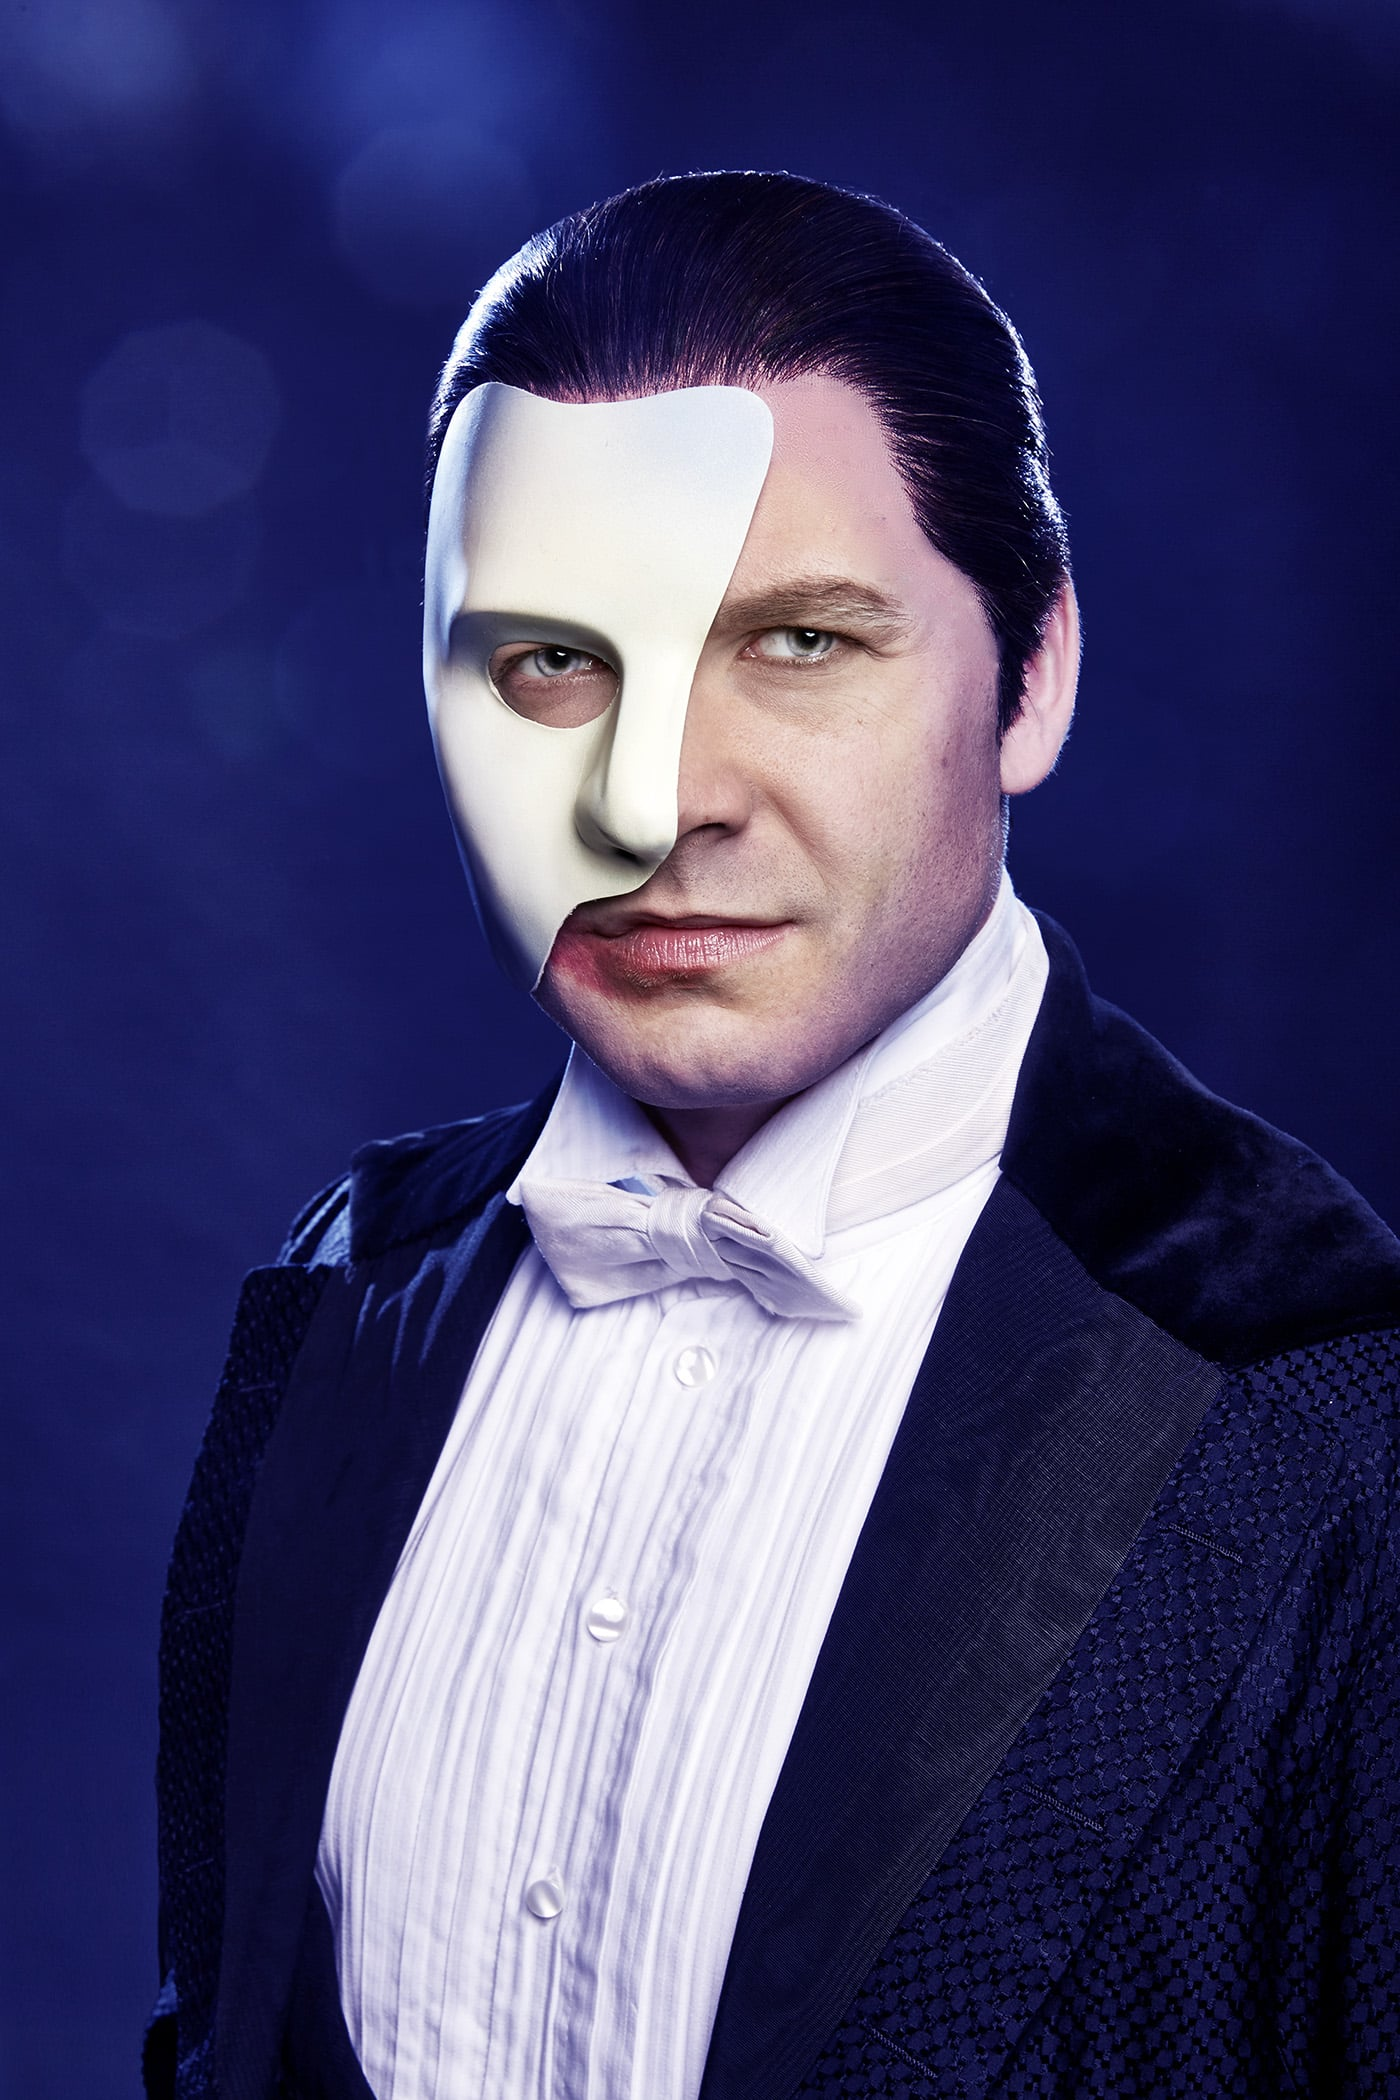 The Phantom of the Opera , Promo-shot, Oberhausen, Germany